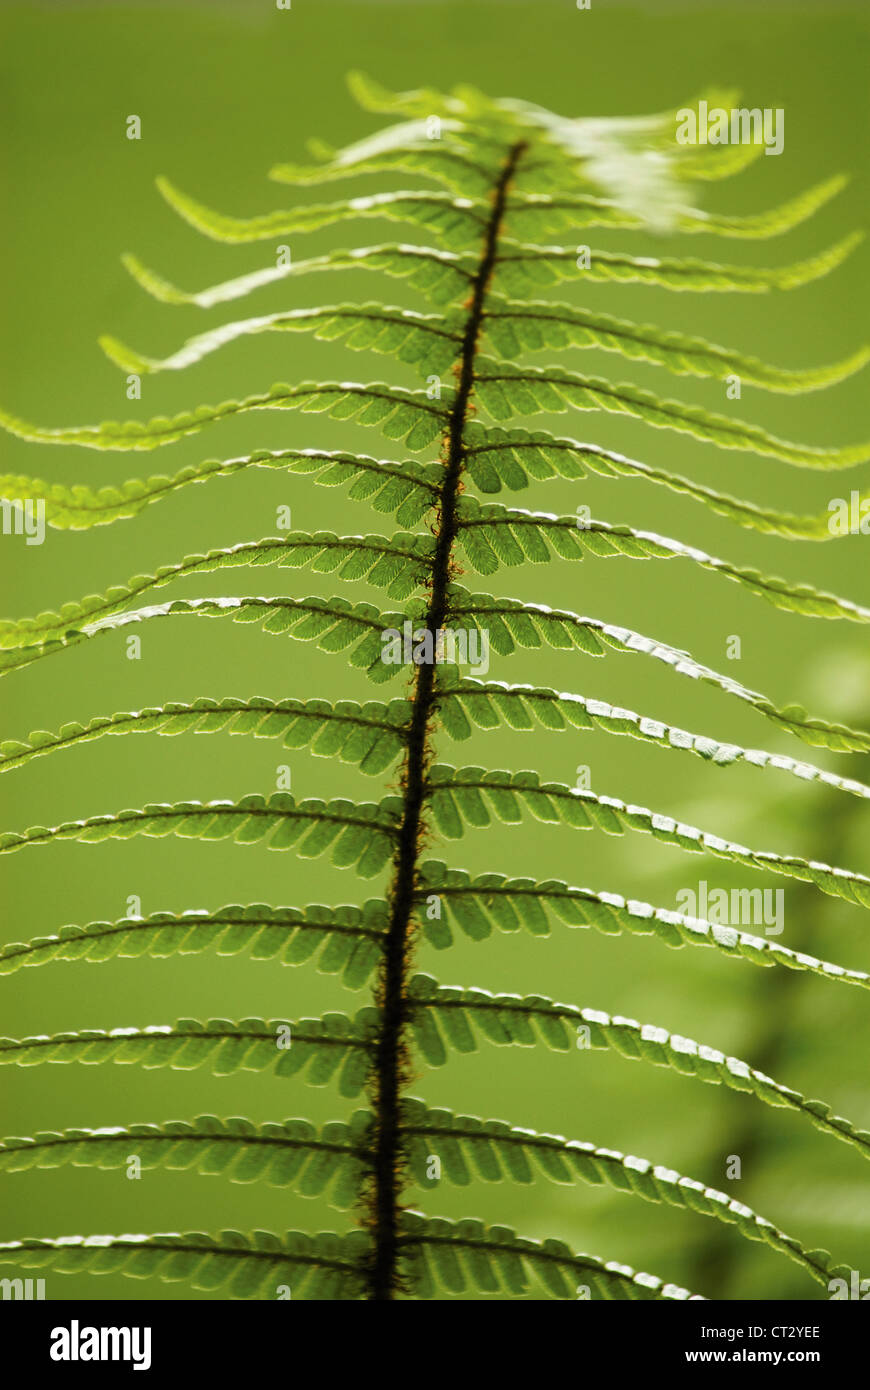 Dryopteris wallichiana, Wallich's wood fern, single green upright frond against a green background. - Stock Image